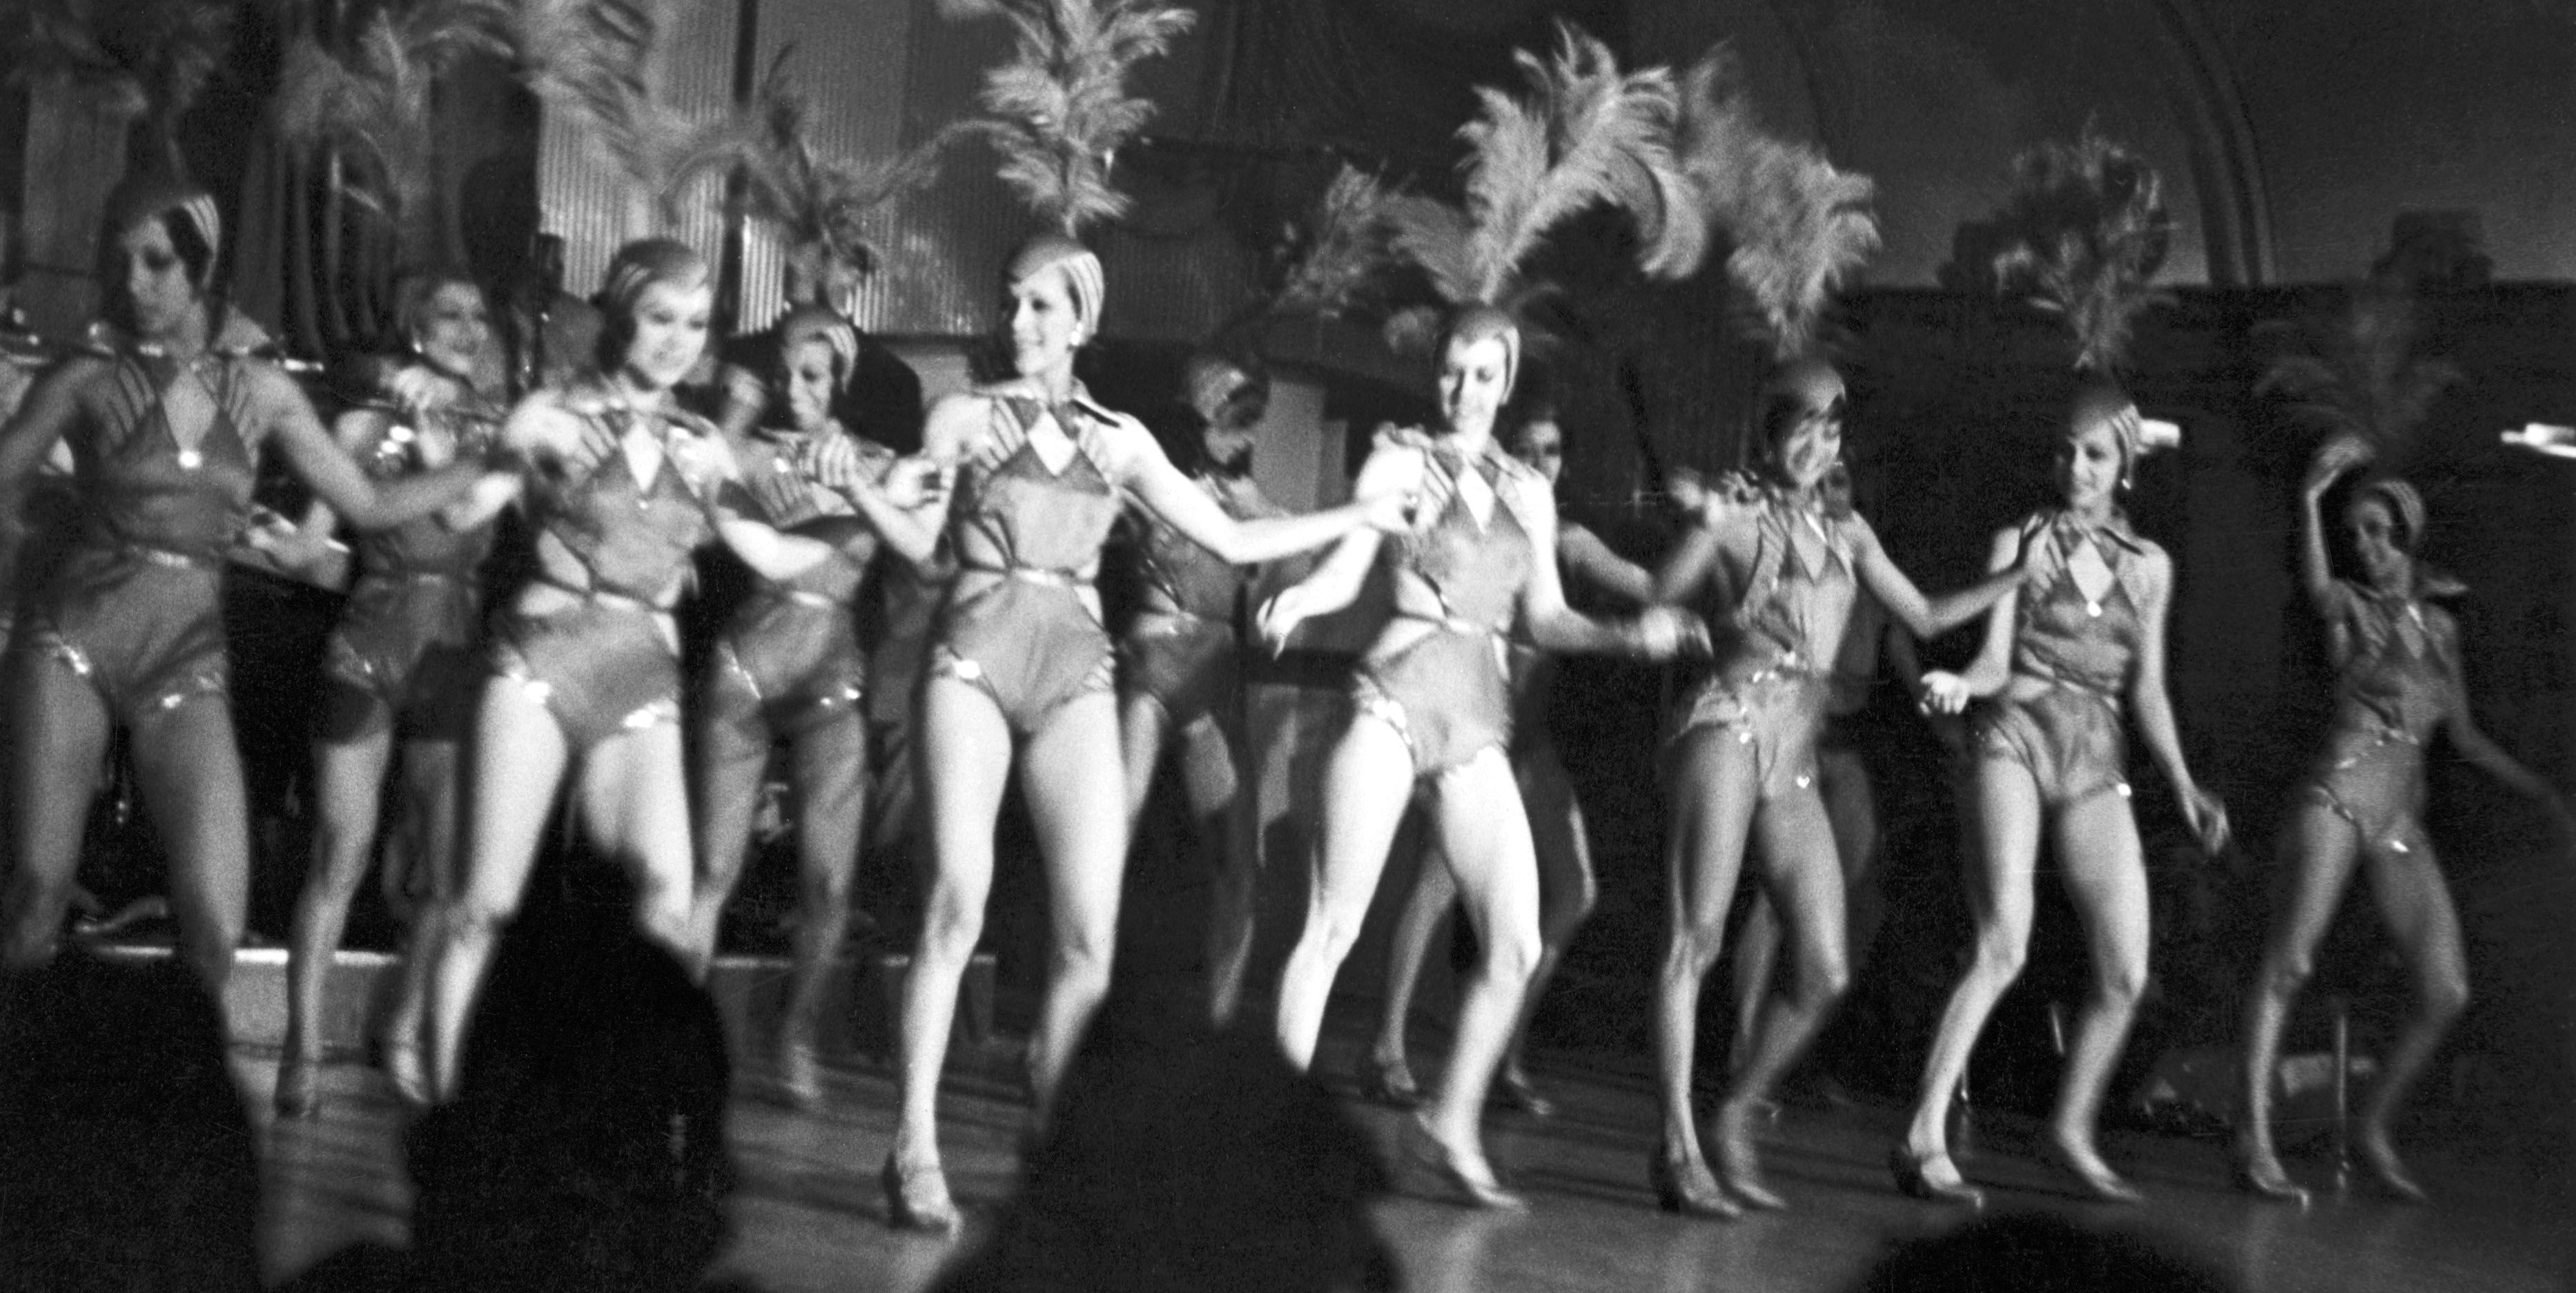 Located within the heart of Harlem, the exclusive club was known for their highly accredited blues and jazz performers such as Billie Holiday, Cab Calloway, Louis Armstrong and Duke Ellington.